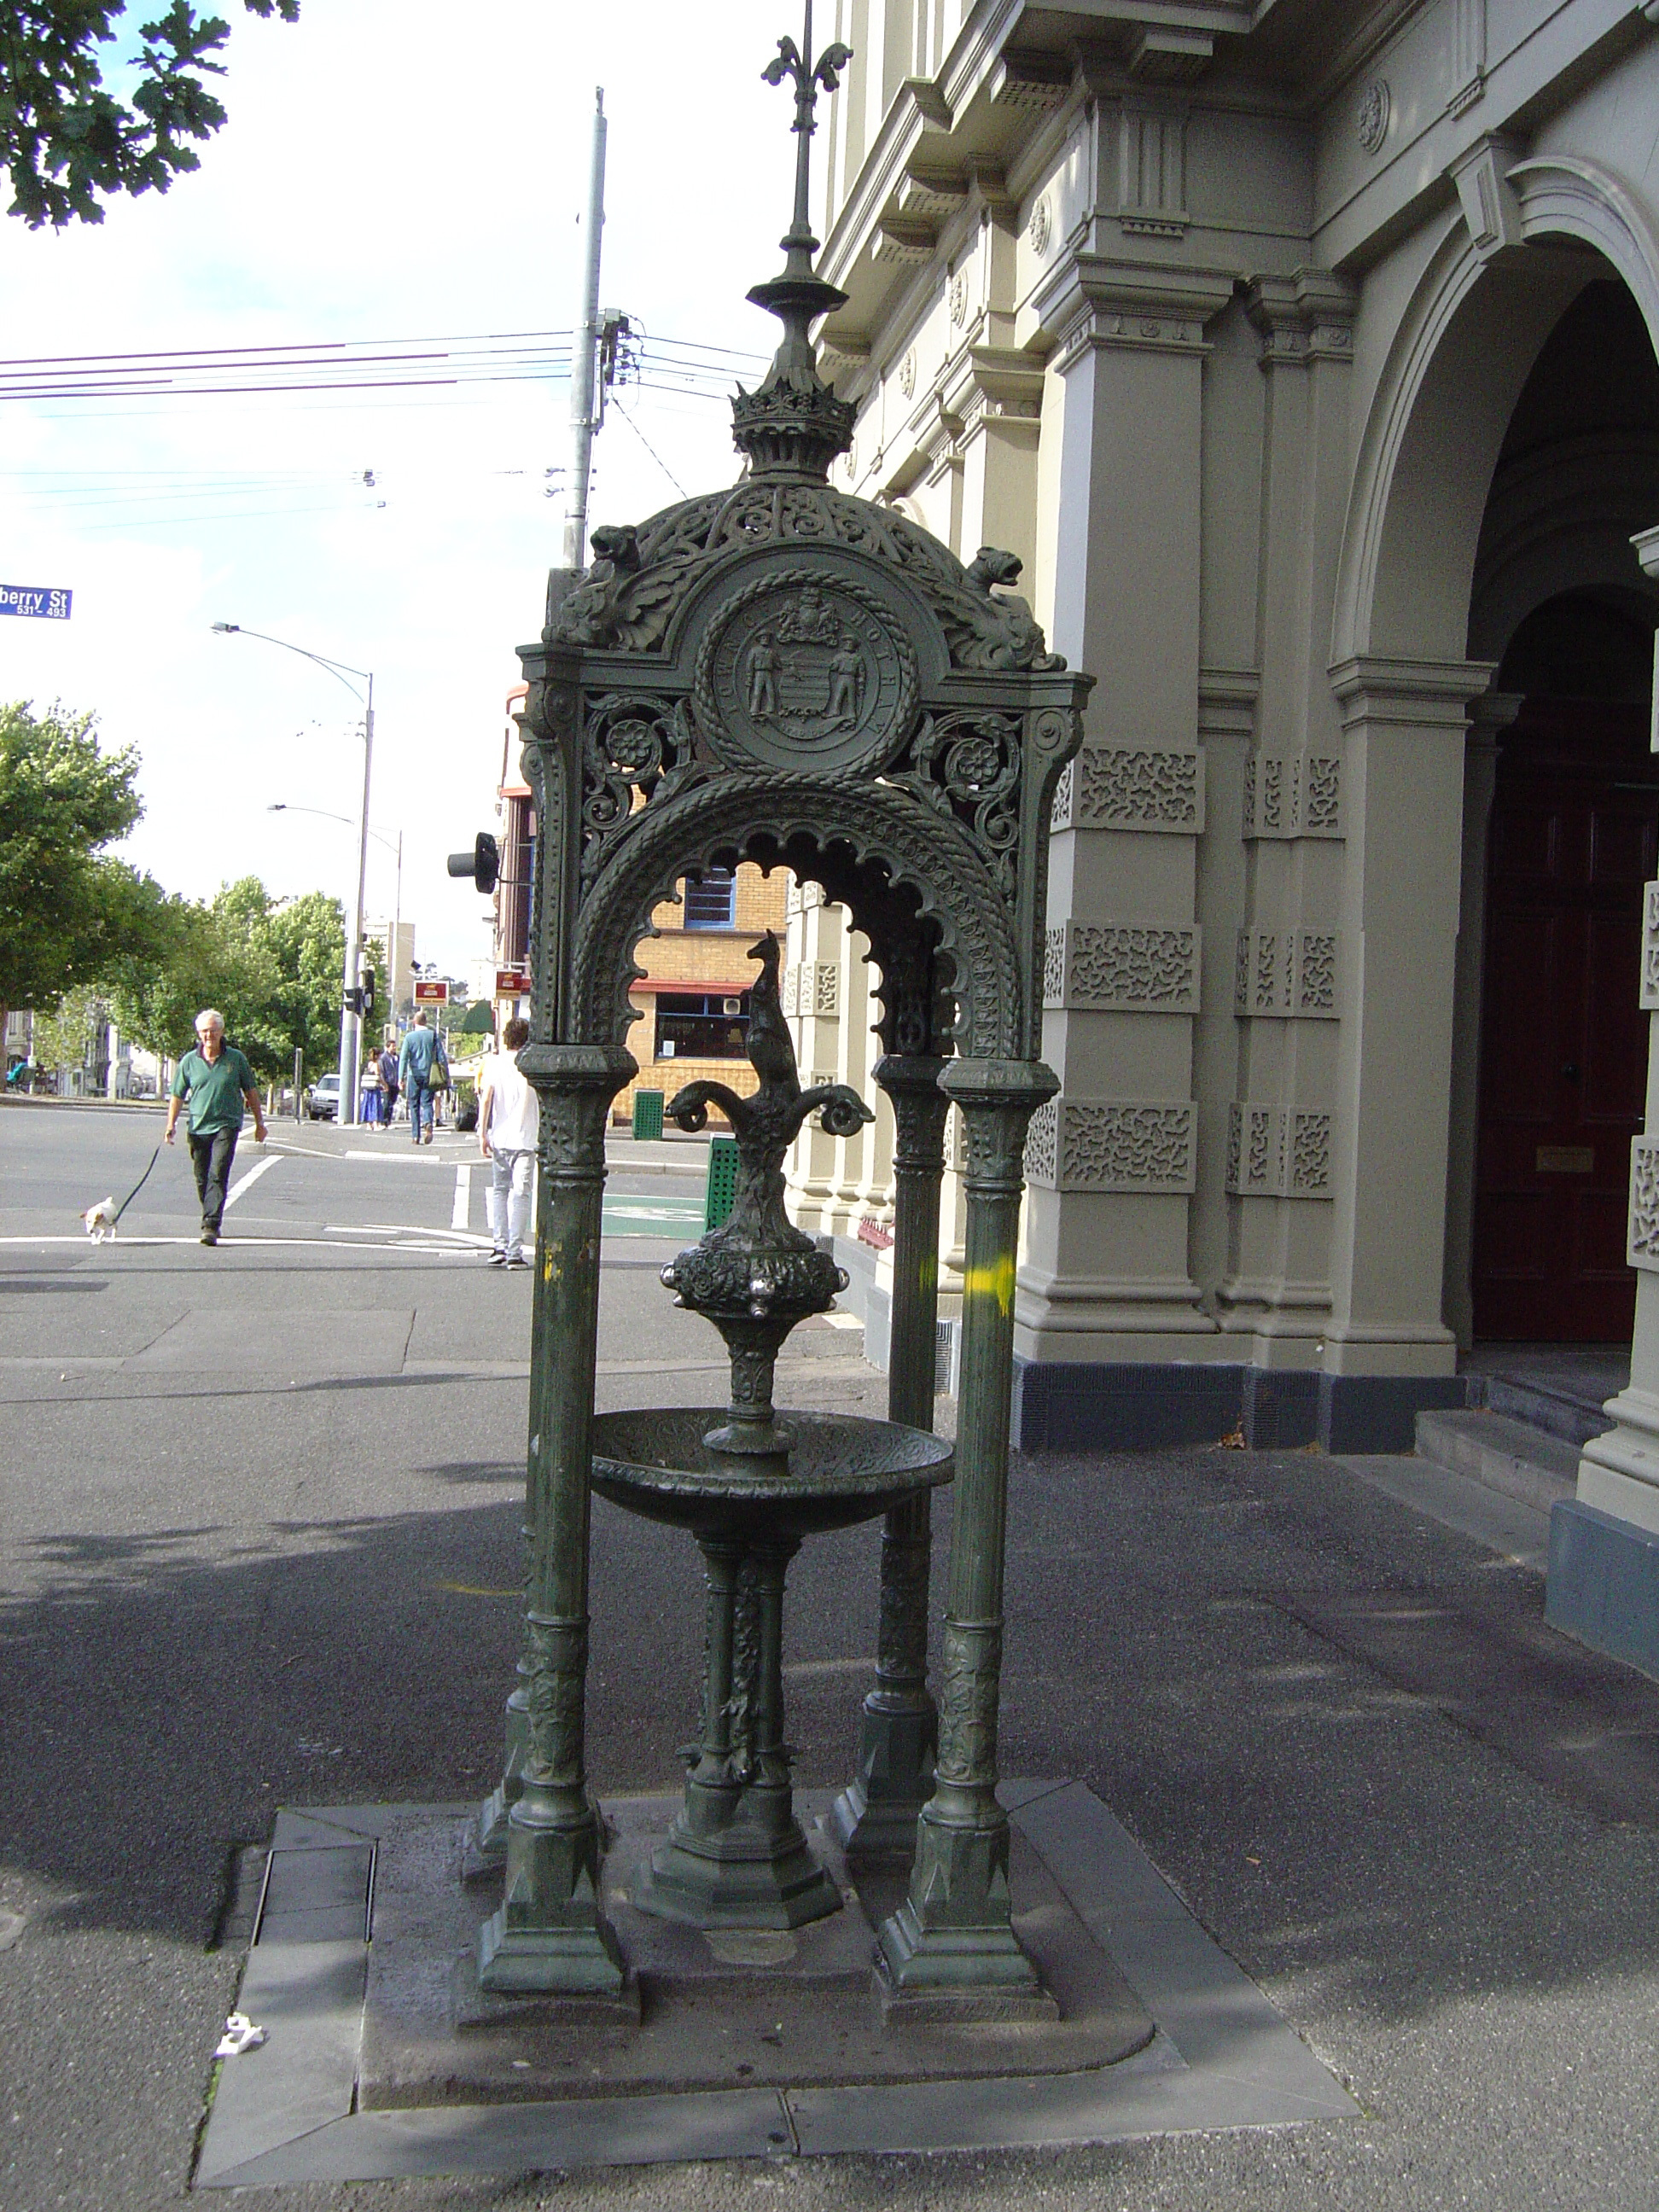 Cast Iron Fountains Melbourne The Best Fountain In The World